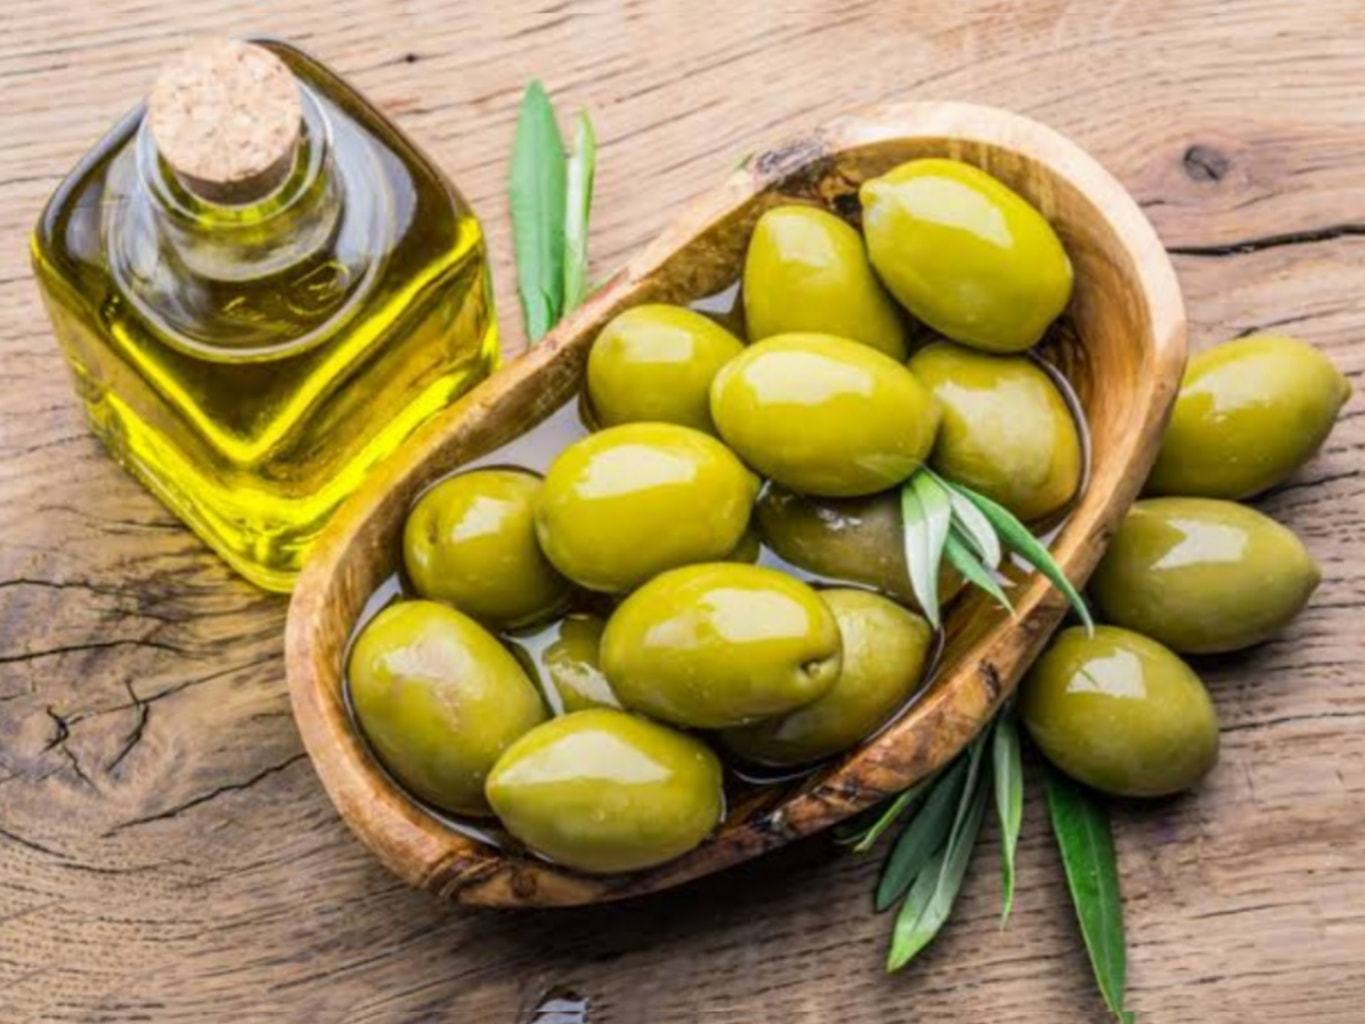 The word Olive is mentioned six times directly in Quran